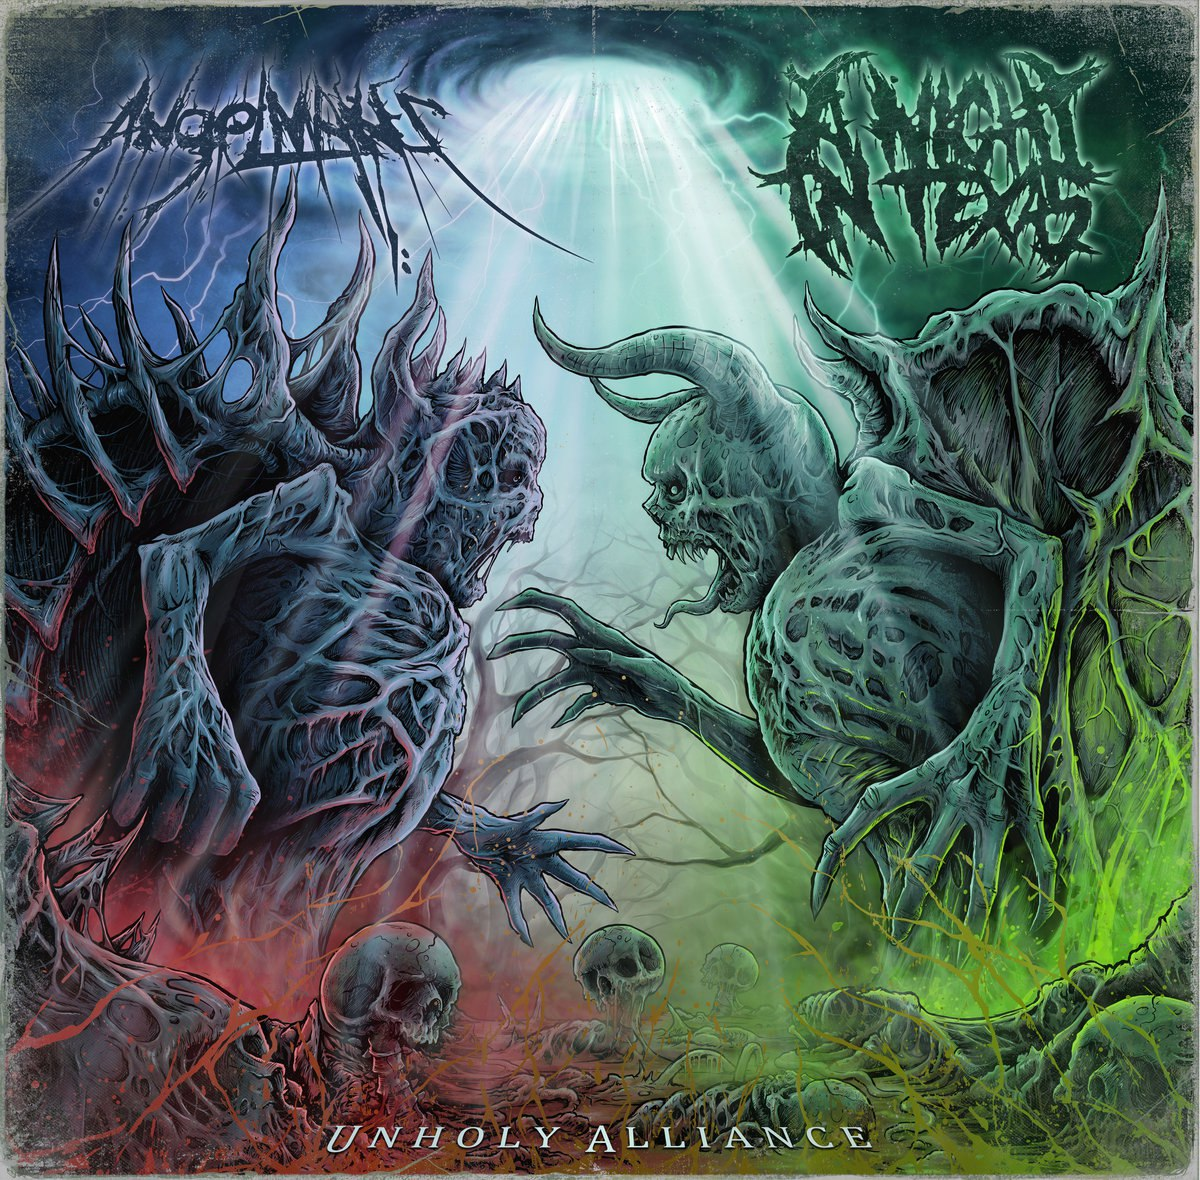 AngelMaker & A Night In Texas - Unholy Alliance [Split EP] (2016)